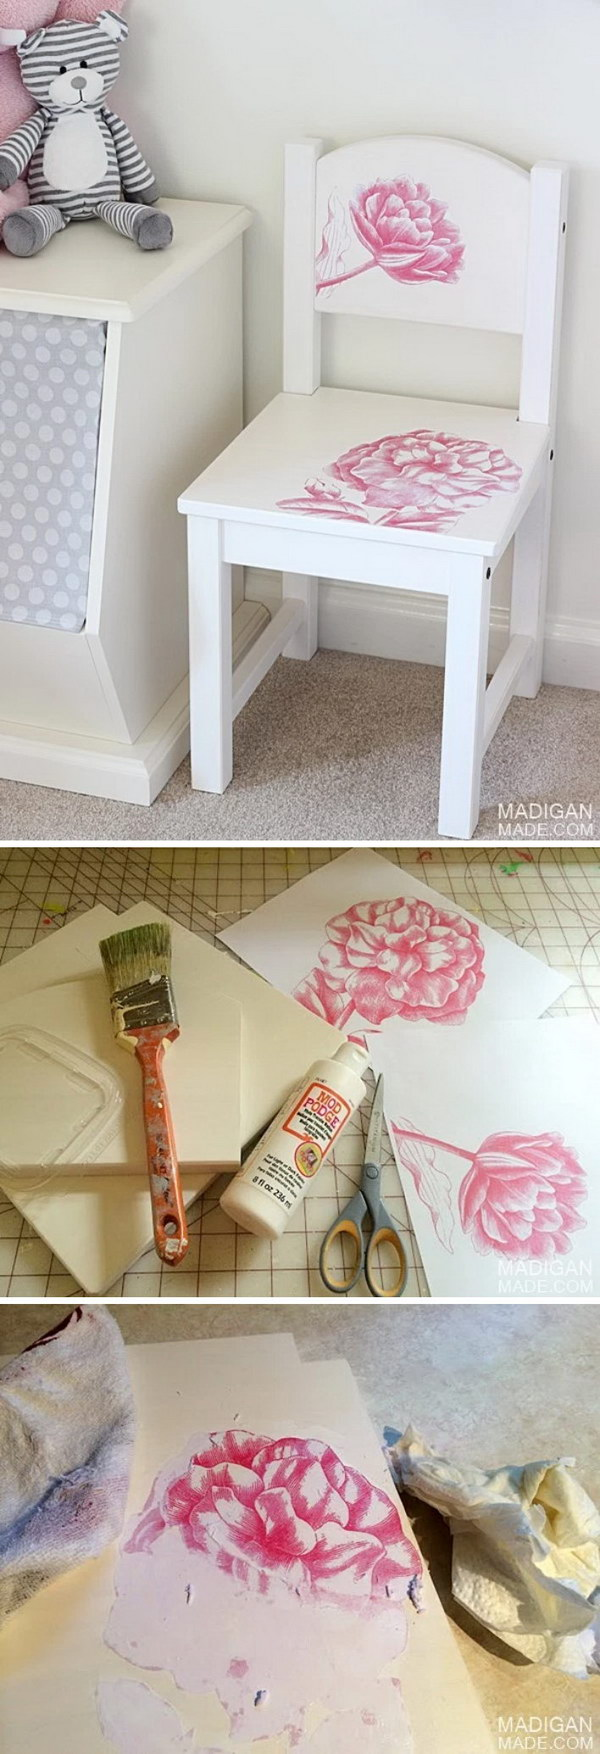 Vintage IKEA Kid's Chair Hack With A Photo Transfer.